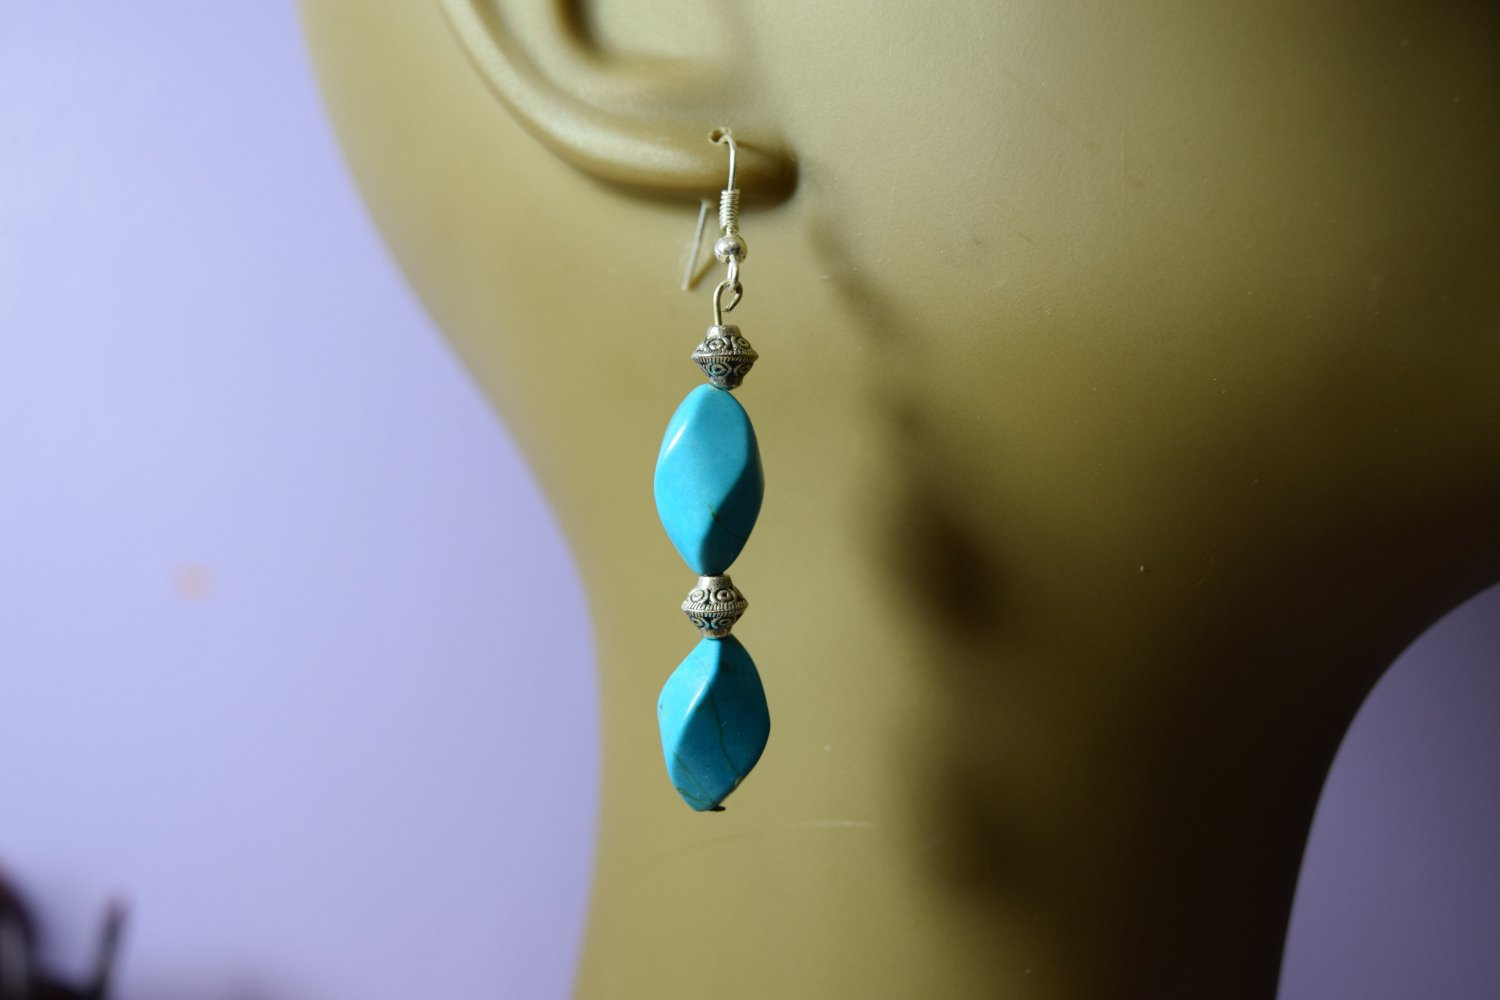 Tear drop  turquoise earrings